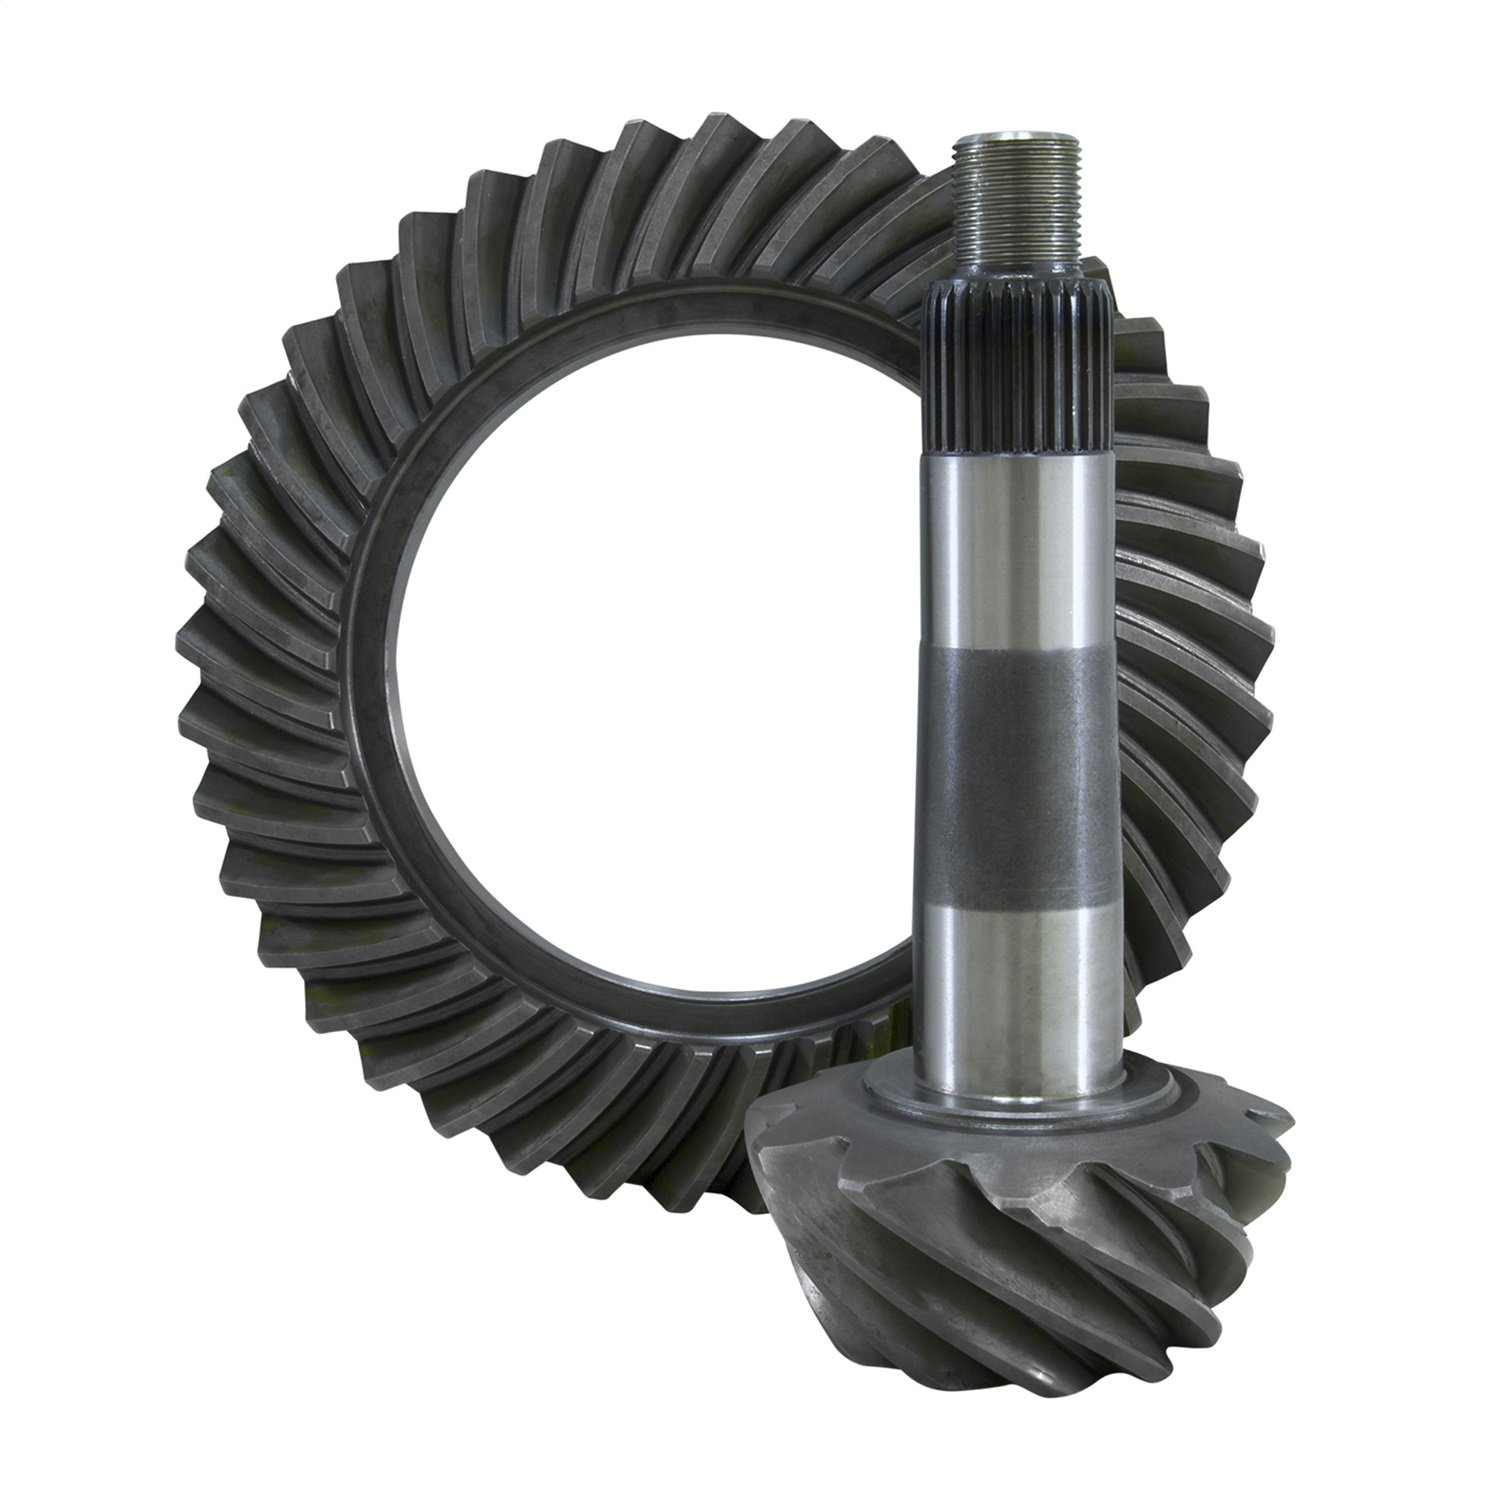 USA Standard Gear (ZG GM12T-373T) Ring & Pinion Gear Set for GM 12-Bolt Truck Differential by USA Standard Gear